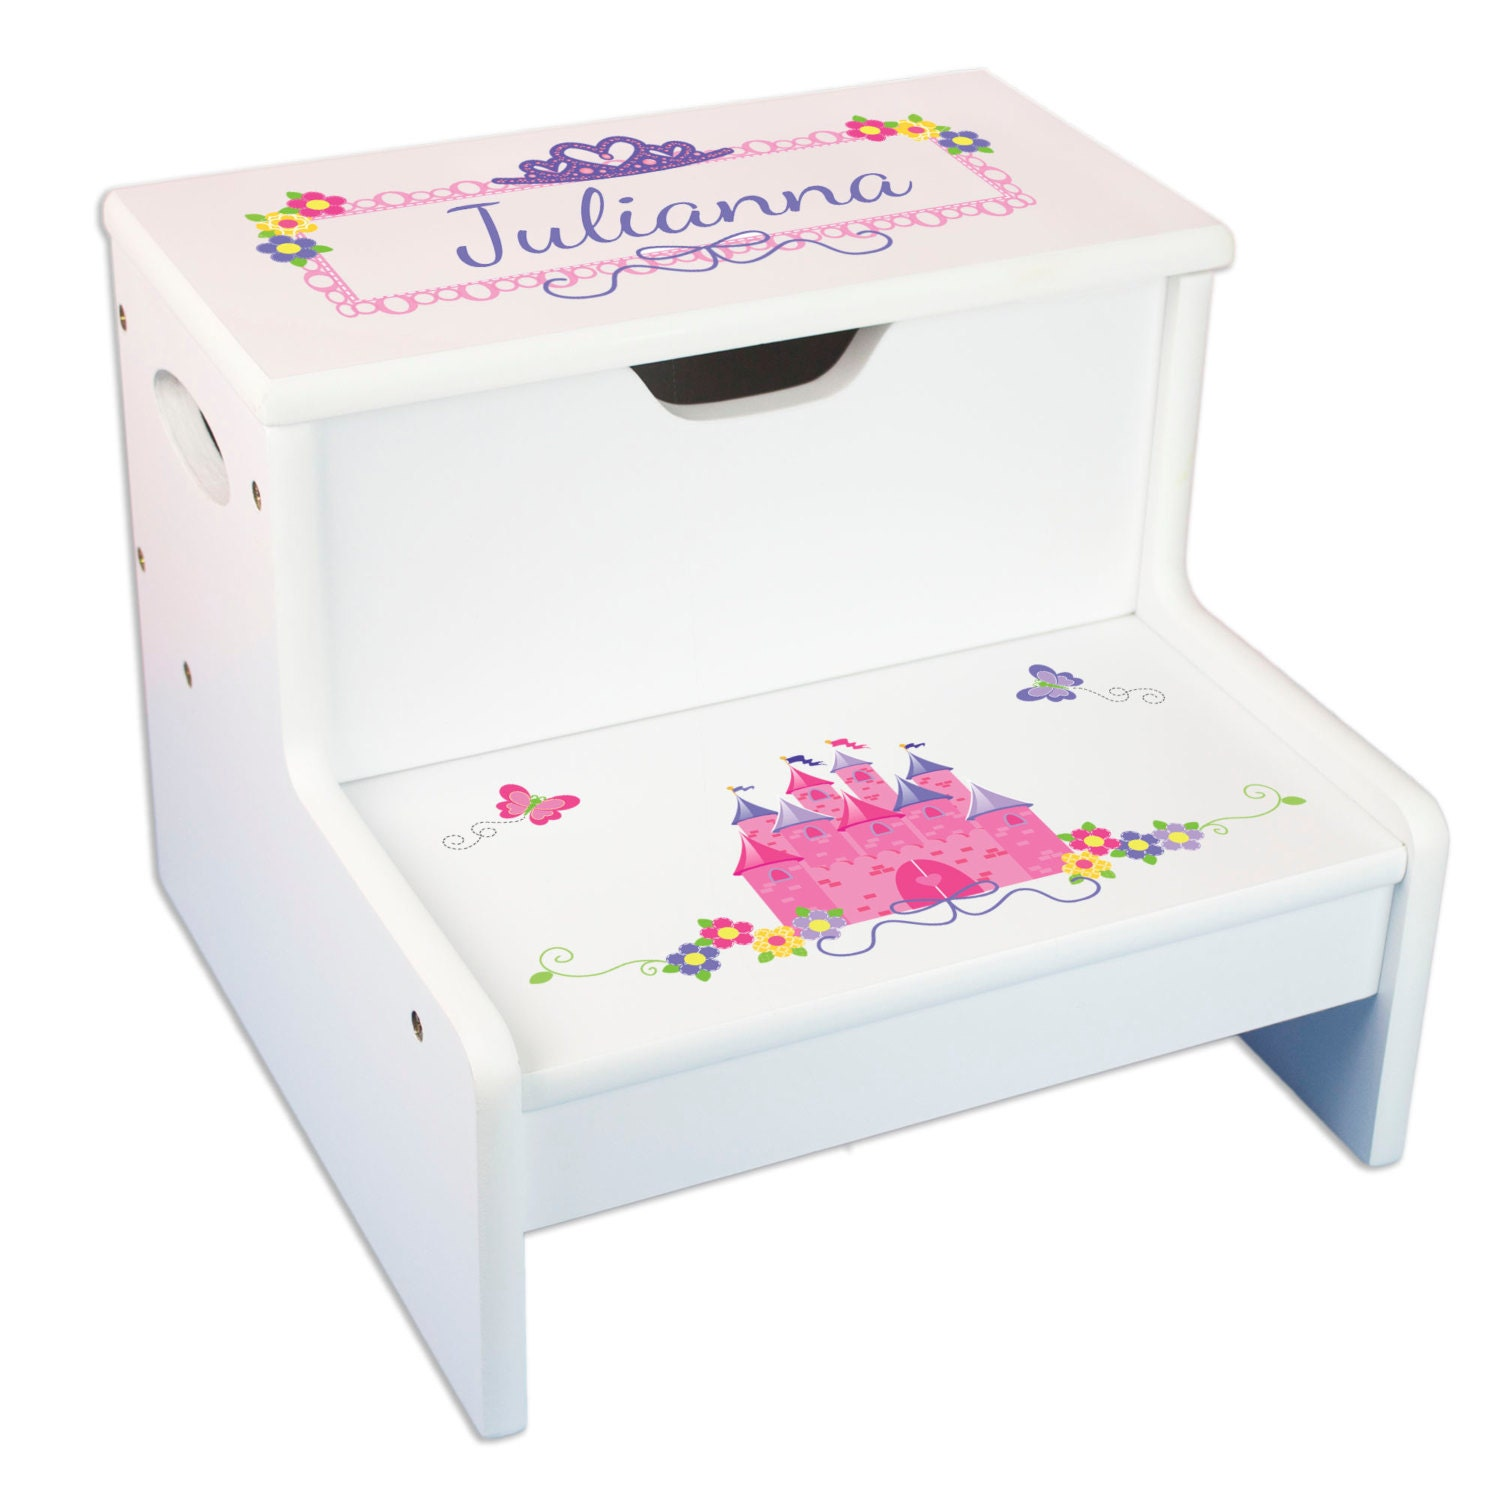 Wondrous Girls Personalized Princess Step Stool With Storage Child Wood Stool Great Toddlers Baby Gift Frozen Bedroom Nursery Pink Castle Step Whi307 Beatyapartments Chair Design Images Beatyapartmentscom